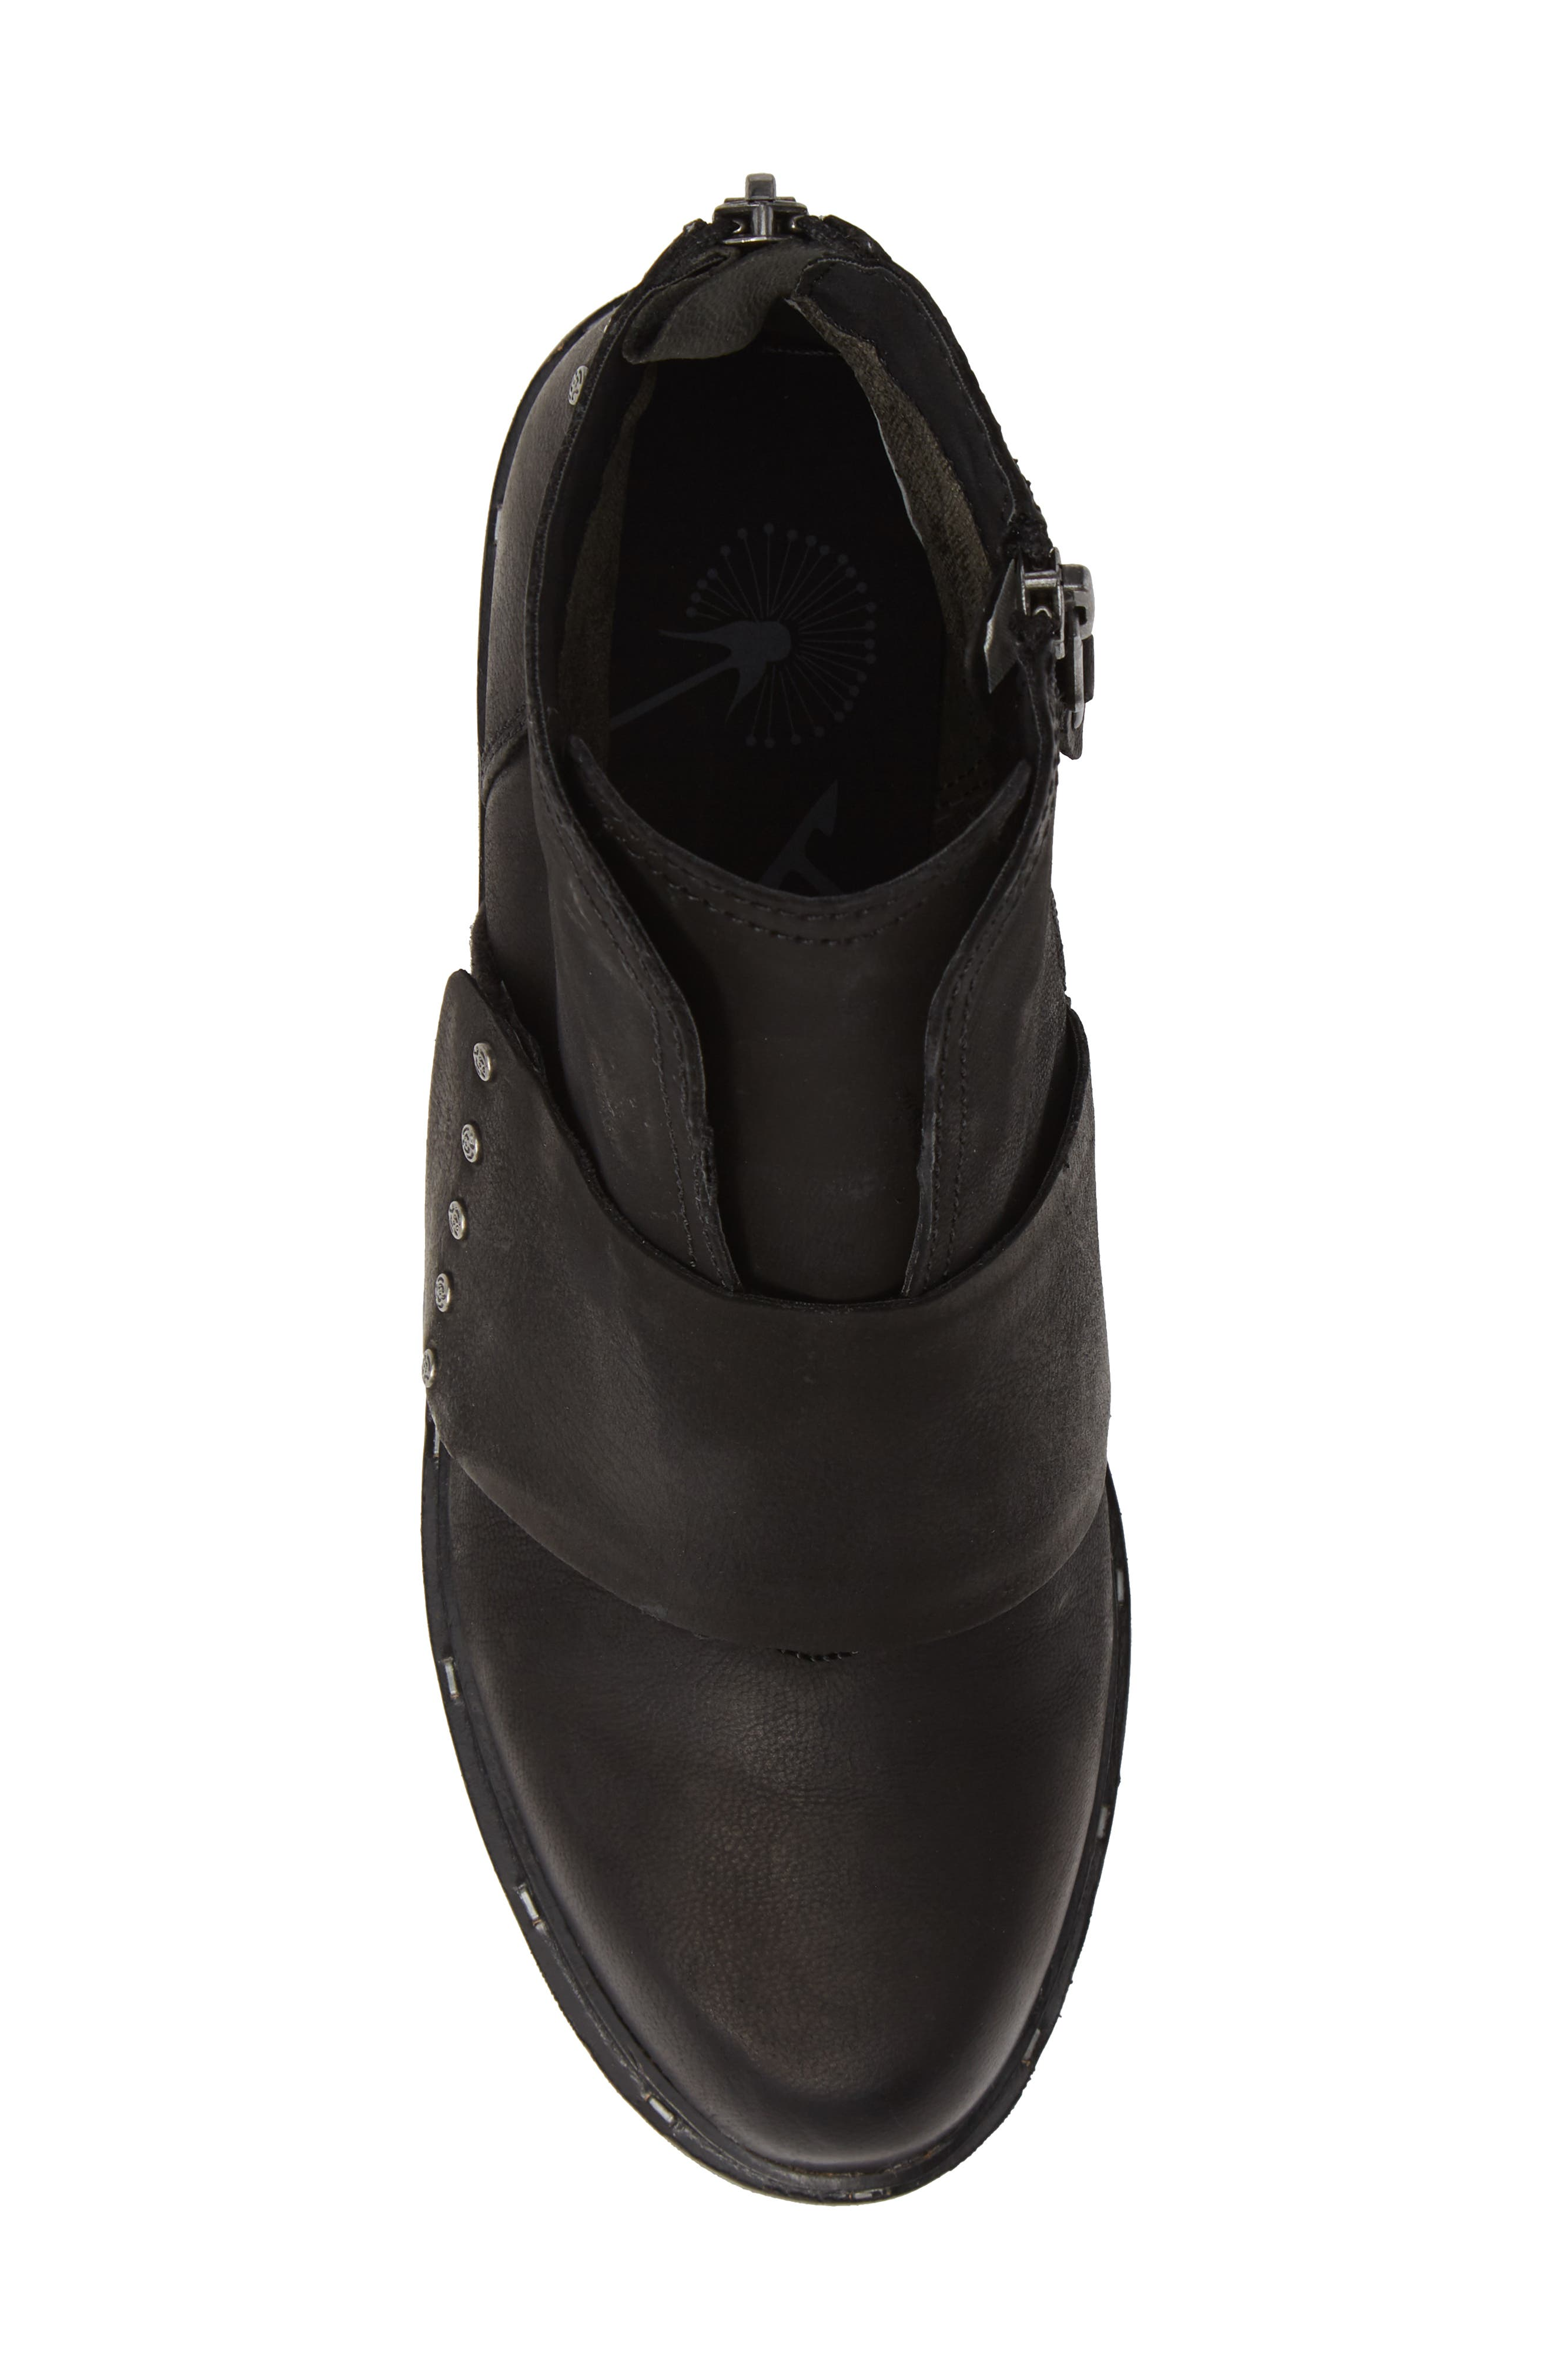 Frontage Bootie,                             Alternate thumbnail 5, color,                             BLACK LEATHER